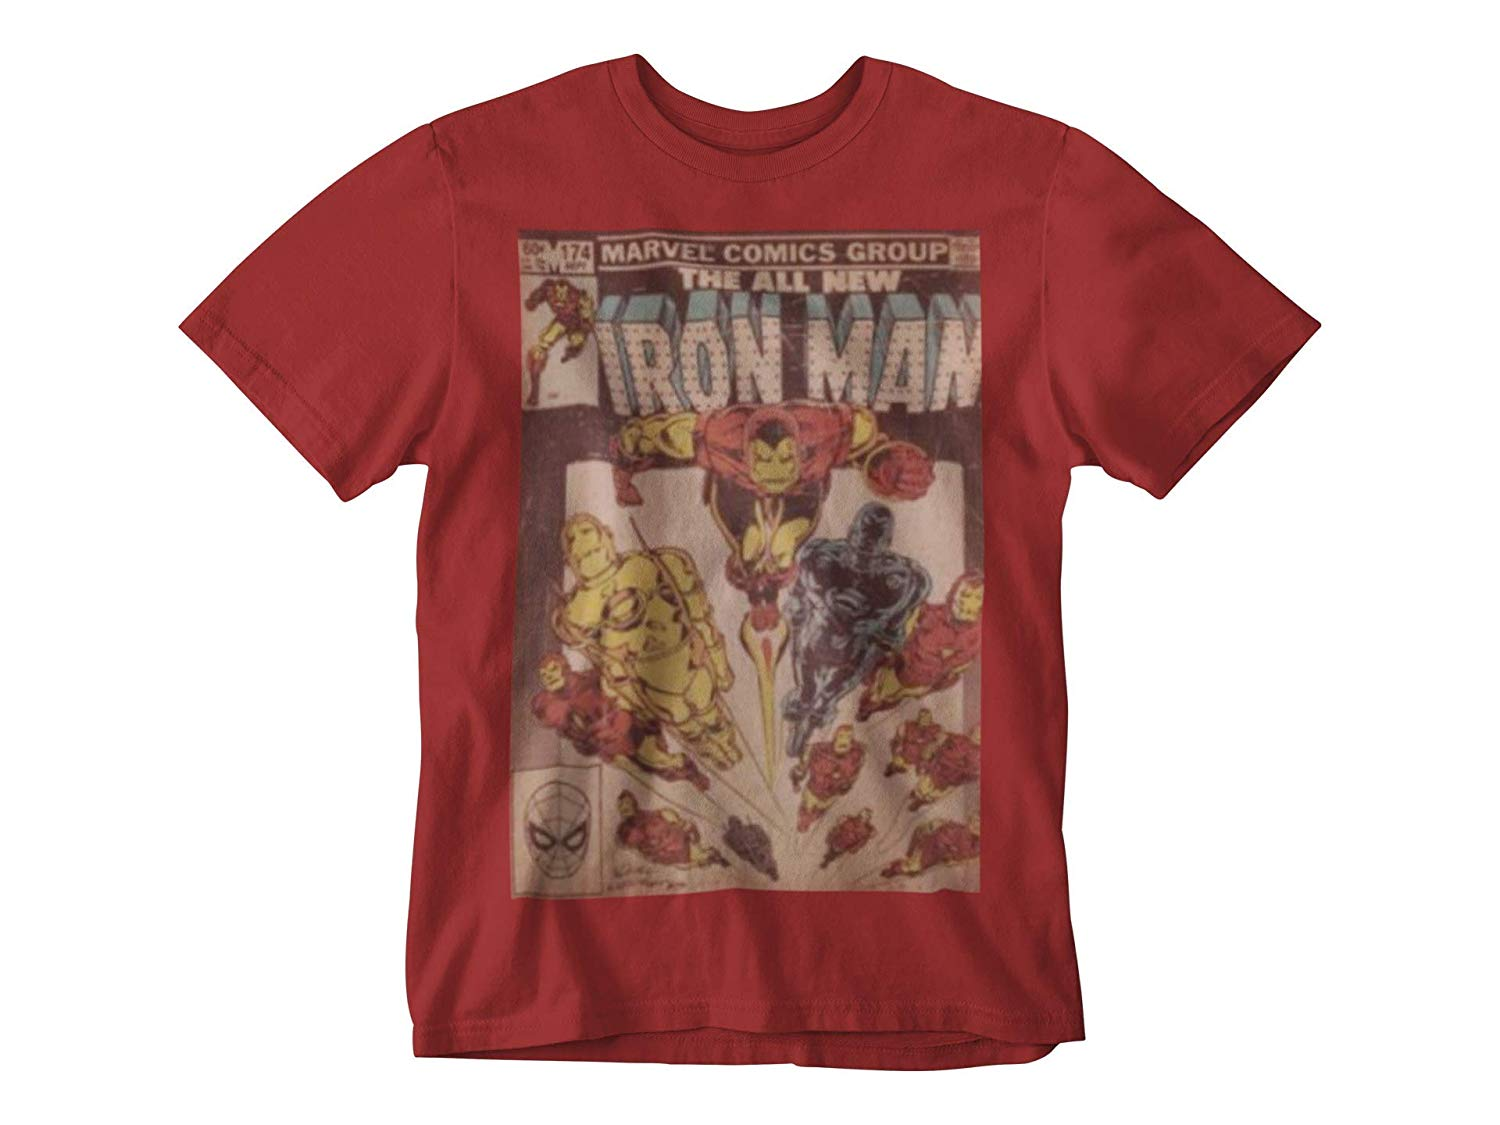 Ironman Vintage Comic Book Men's RED T-Shirt